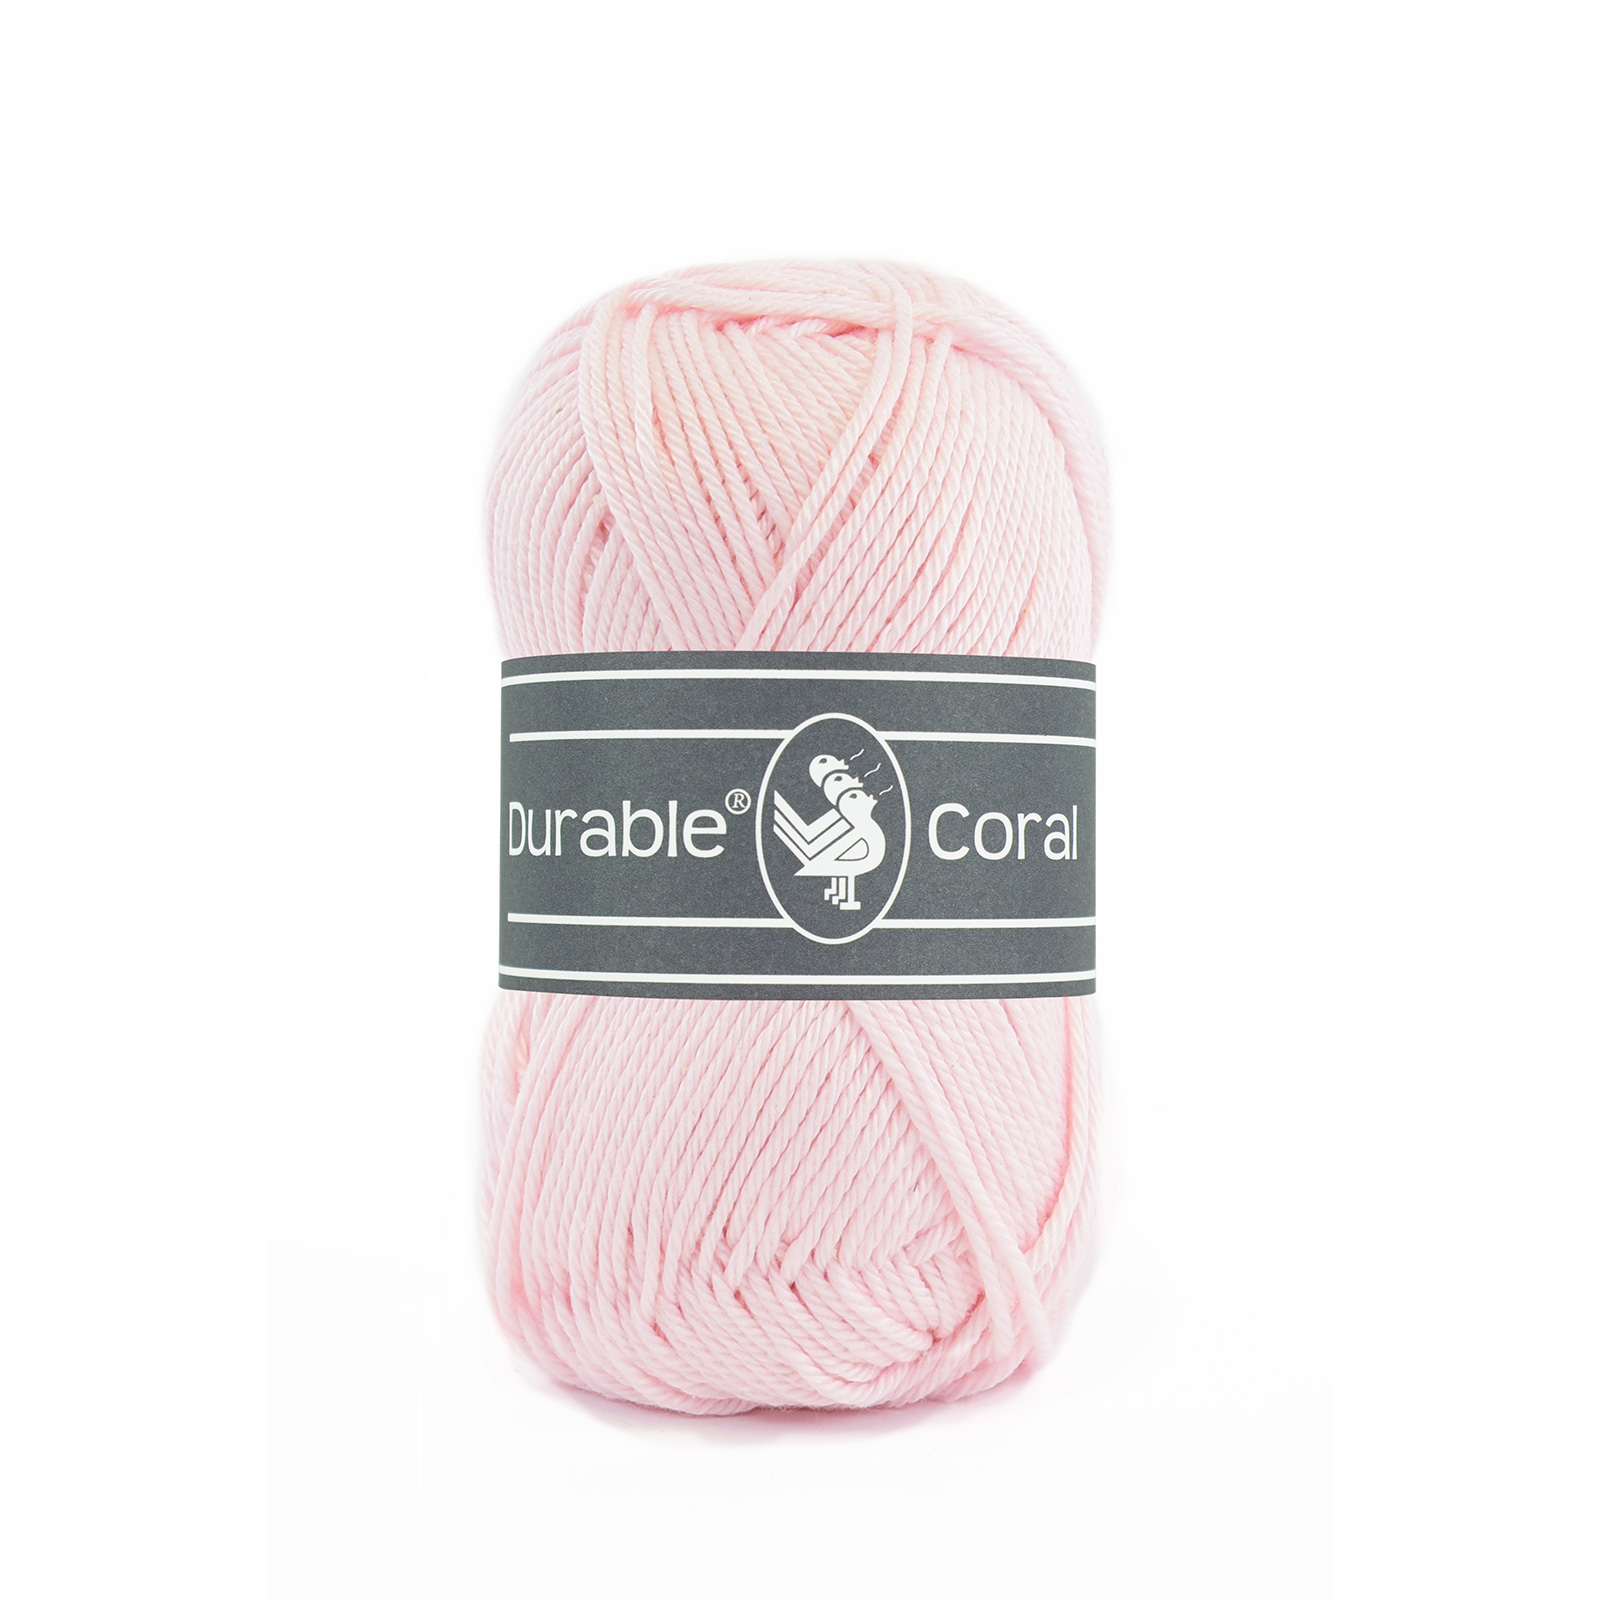 Durable Coral – 203 Pink